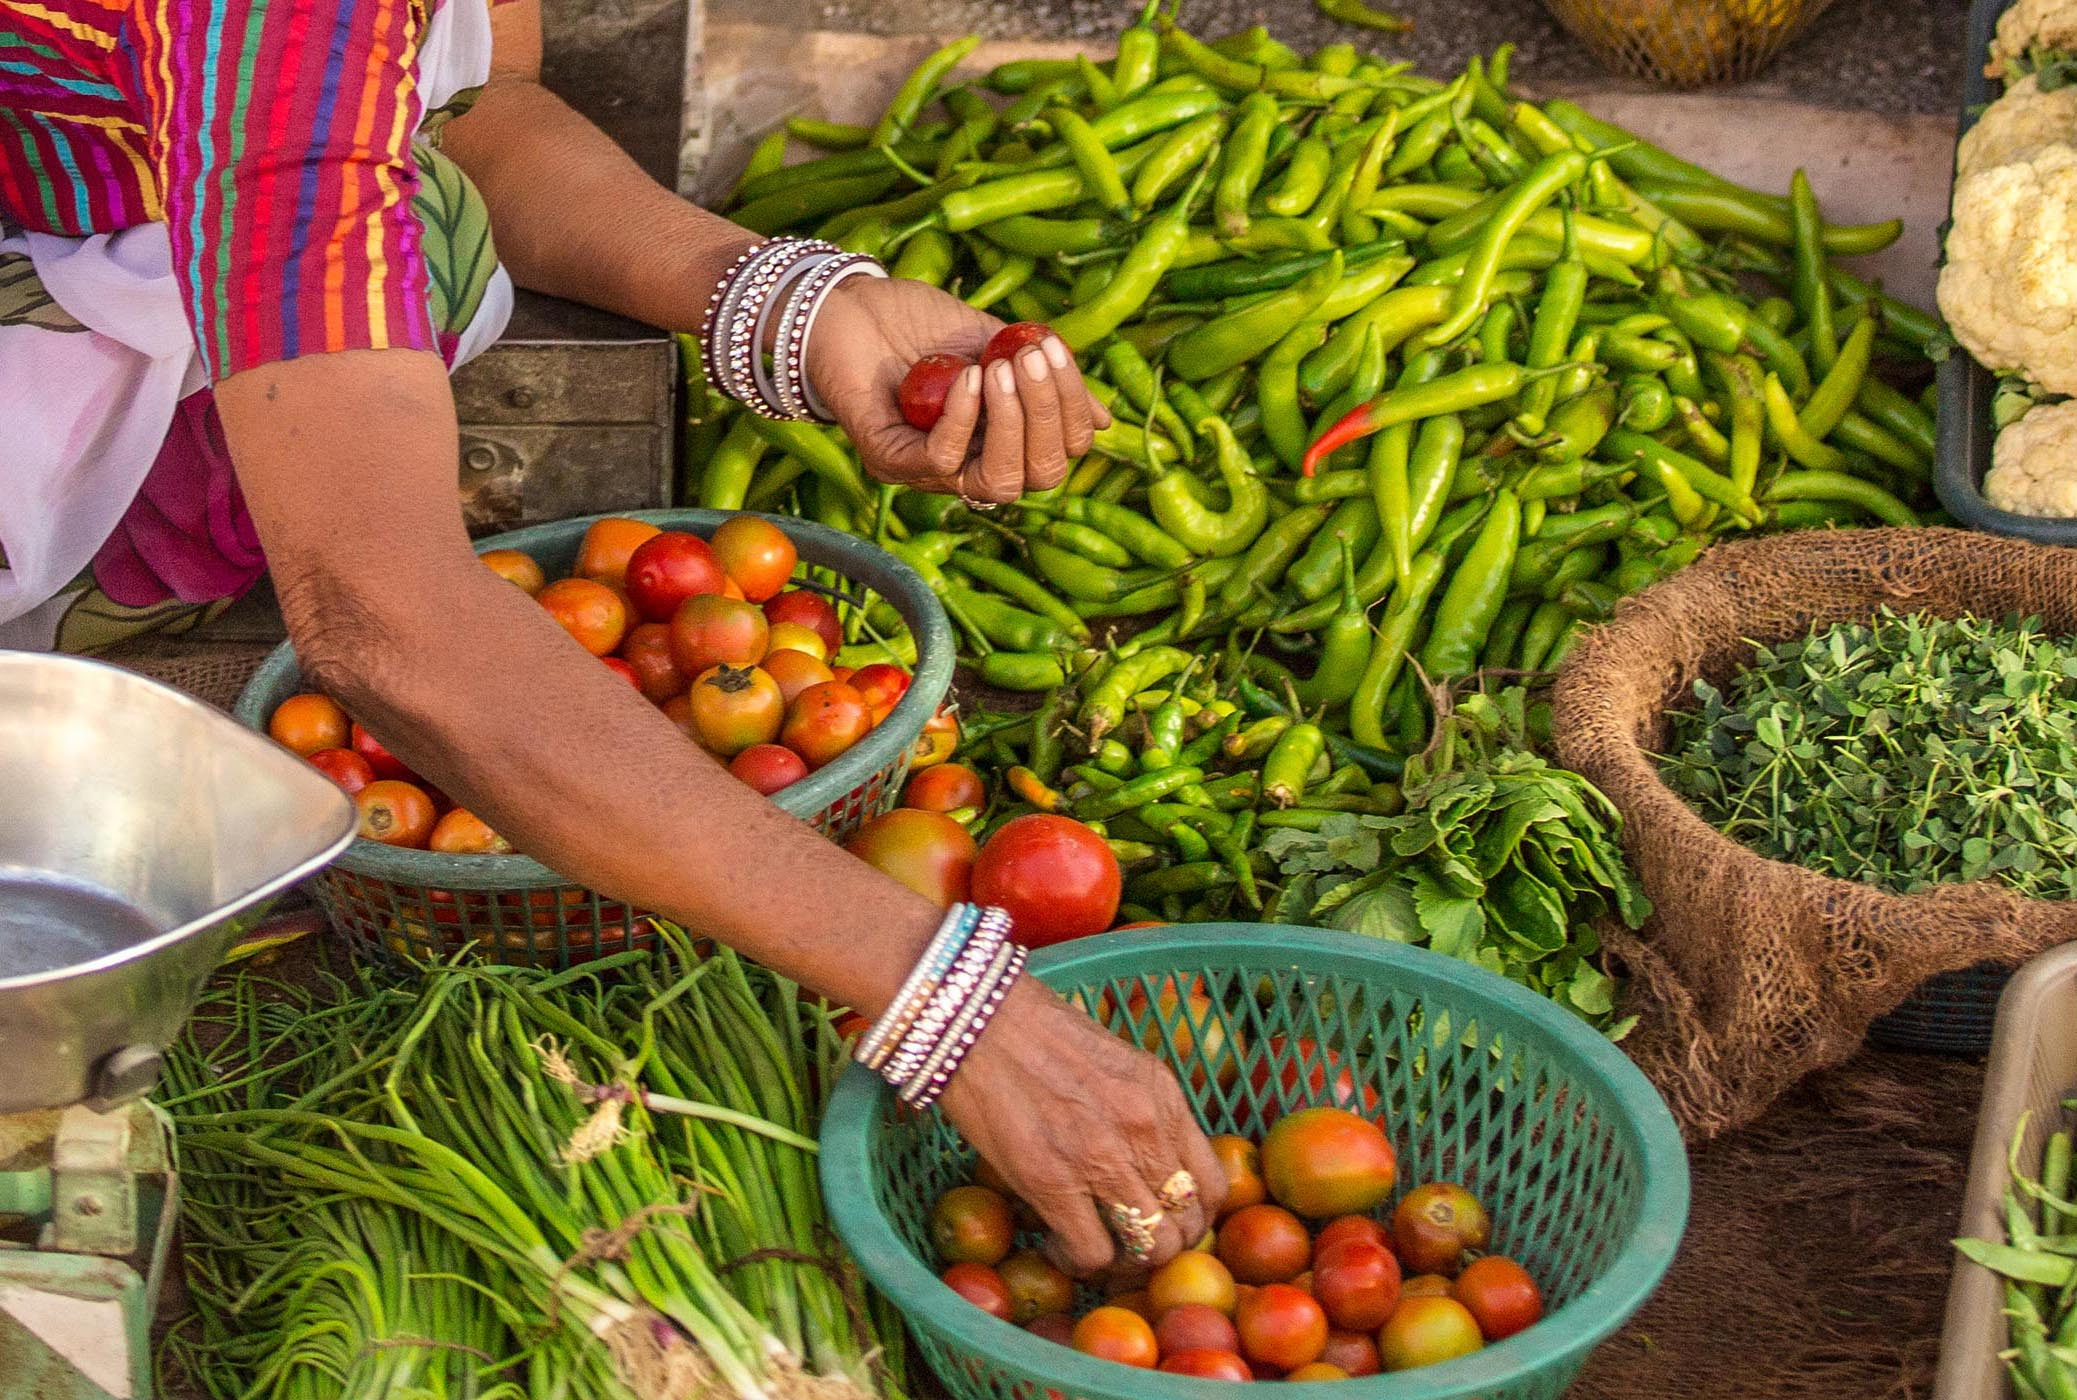 Detail of the hands of an Indian woman selling vegetables in Jodhpur, Rajasthan